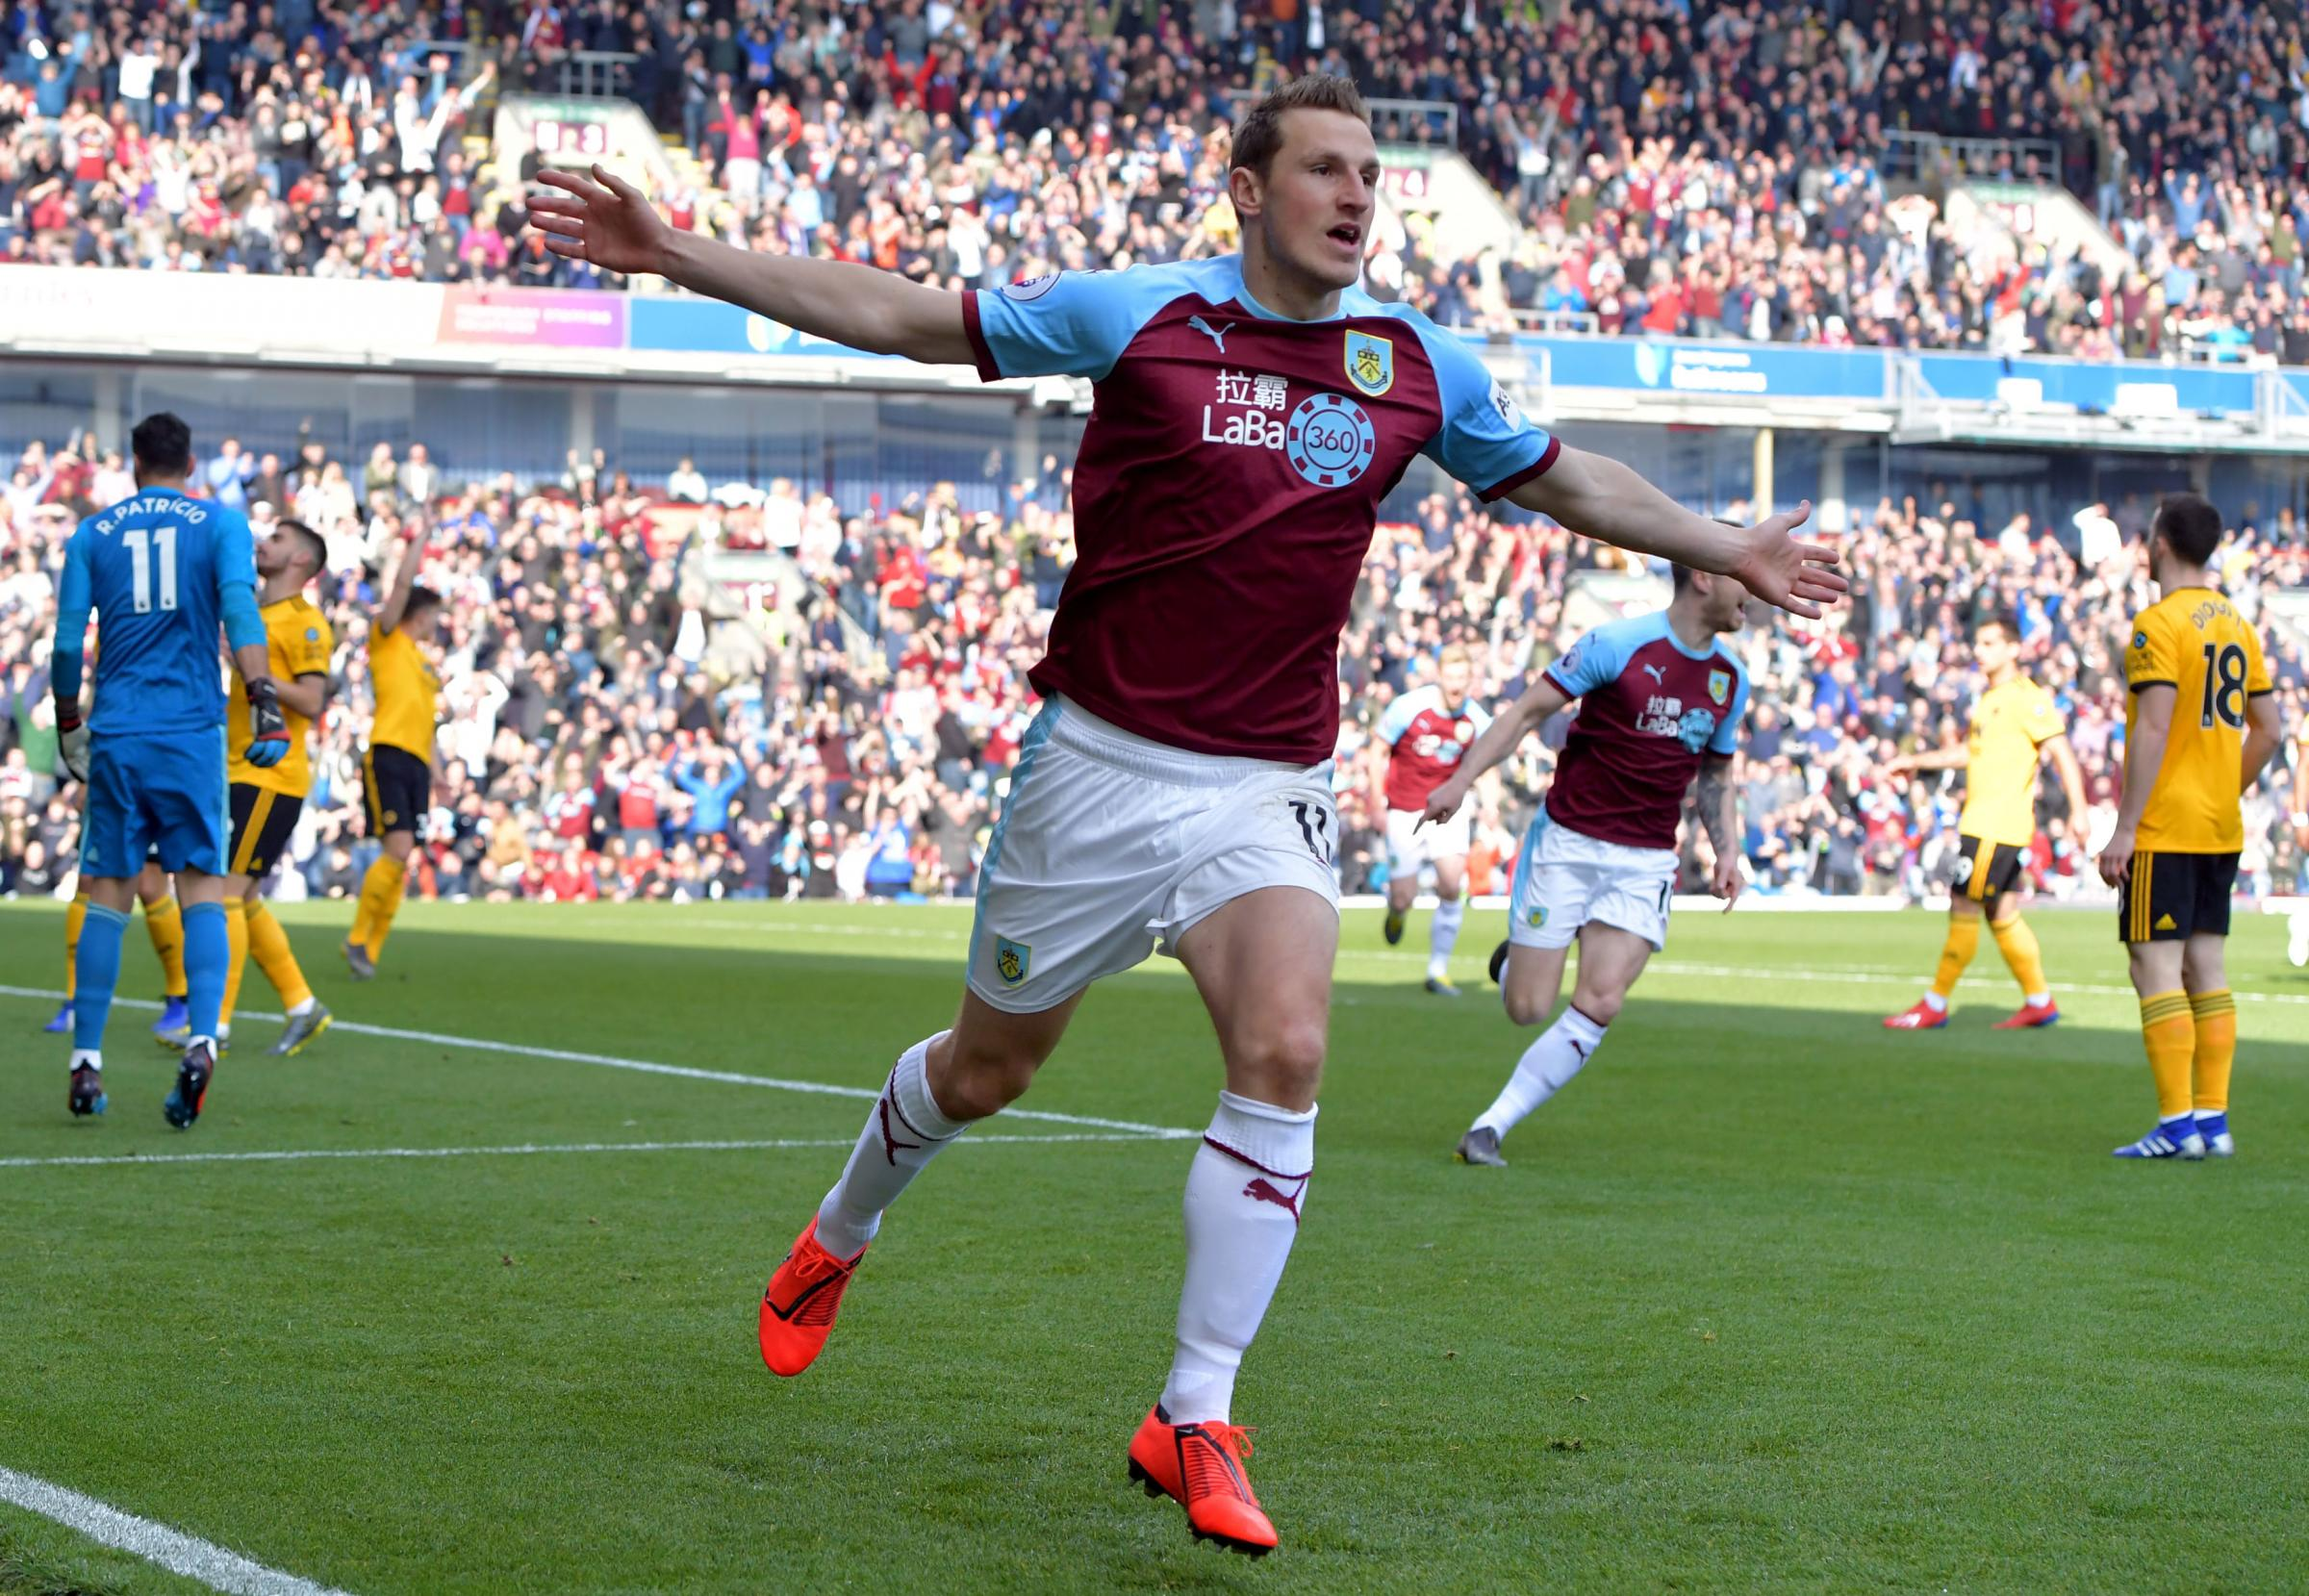 Burnley striker Chris Wood celebrates the opening goal against Wolves last weekend